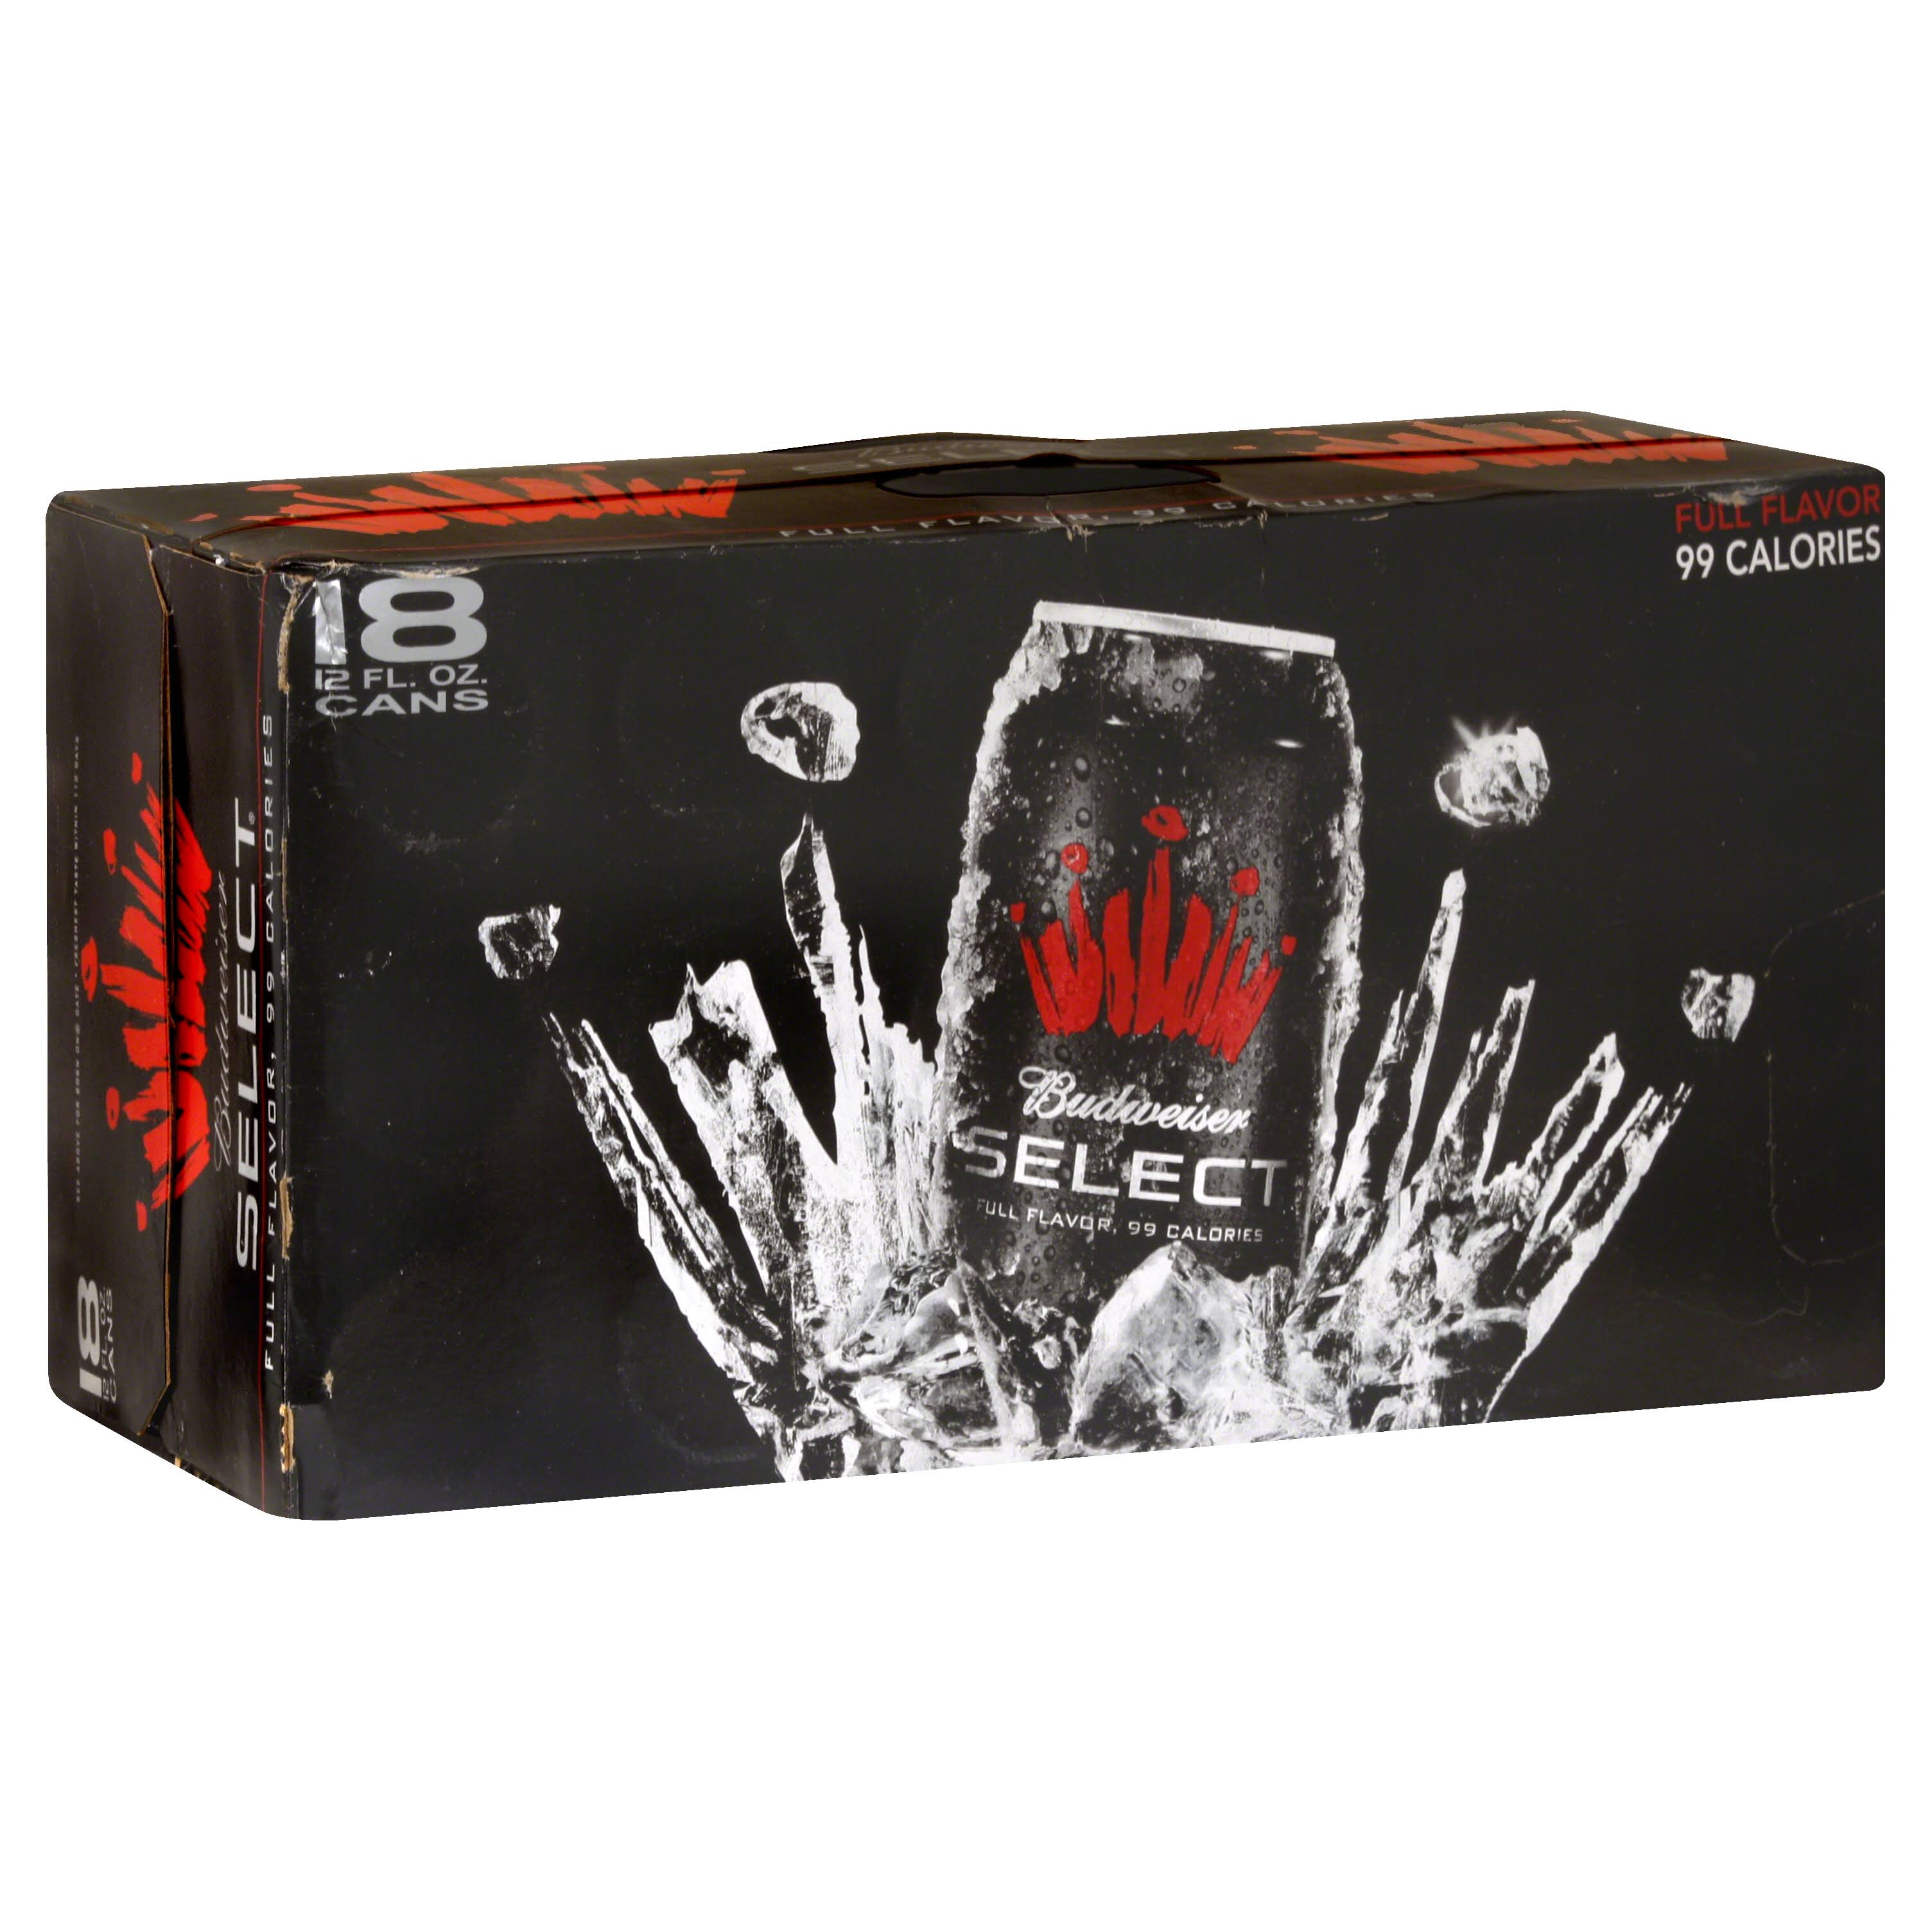 Select Beer - 18 pack, 12 fl oz cans